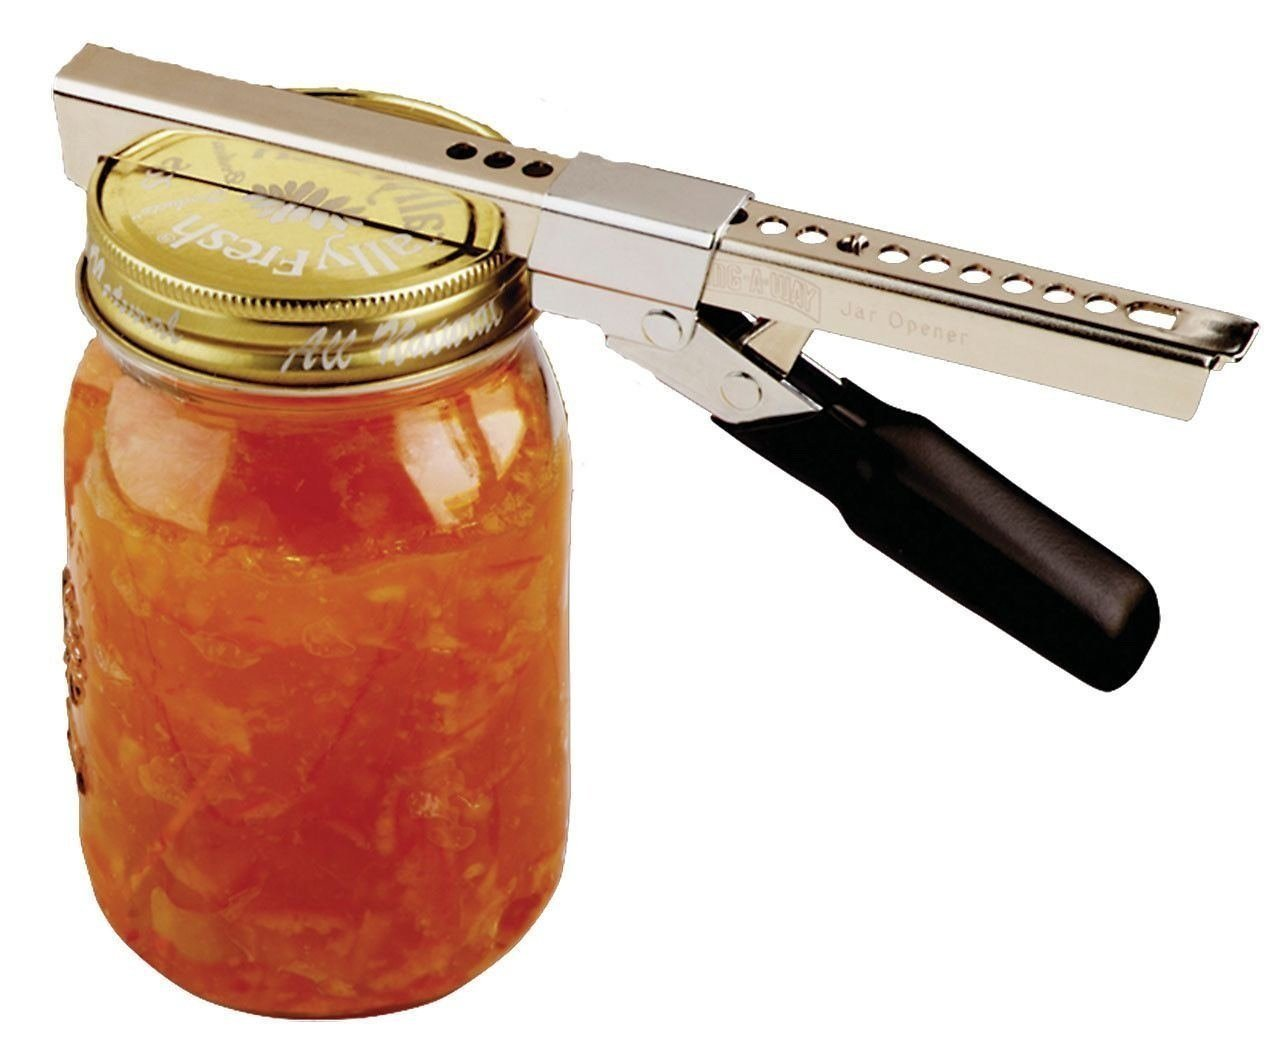 Adjustable Jar Opener Cooks Illustrated Top Pick for Arthritis